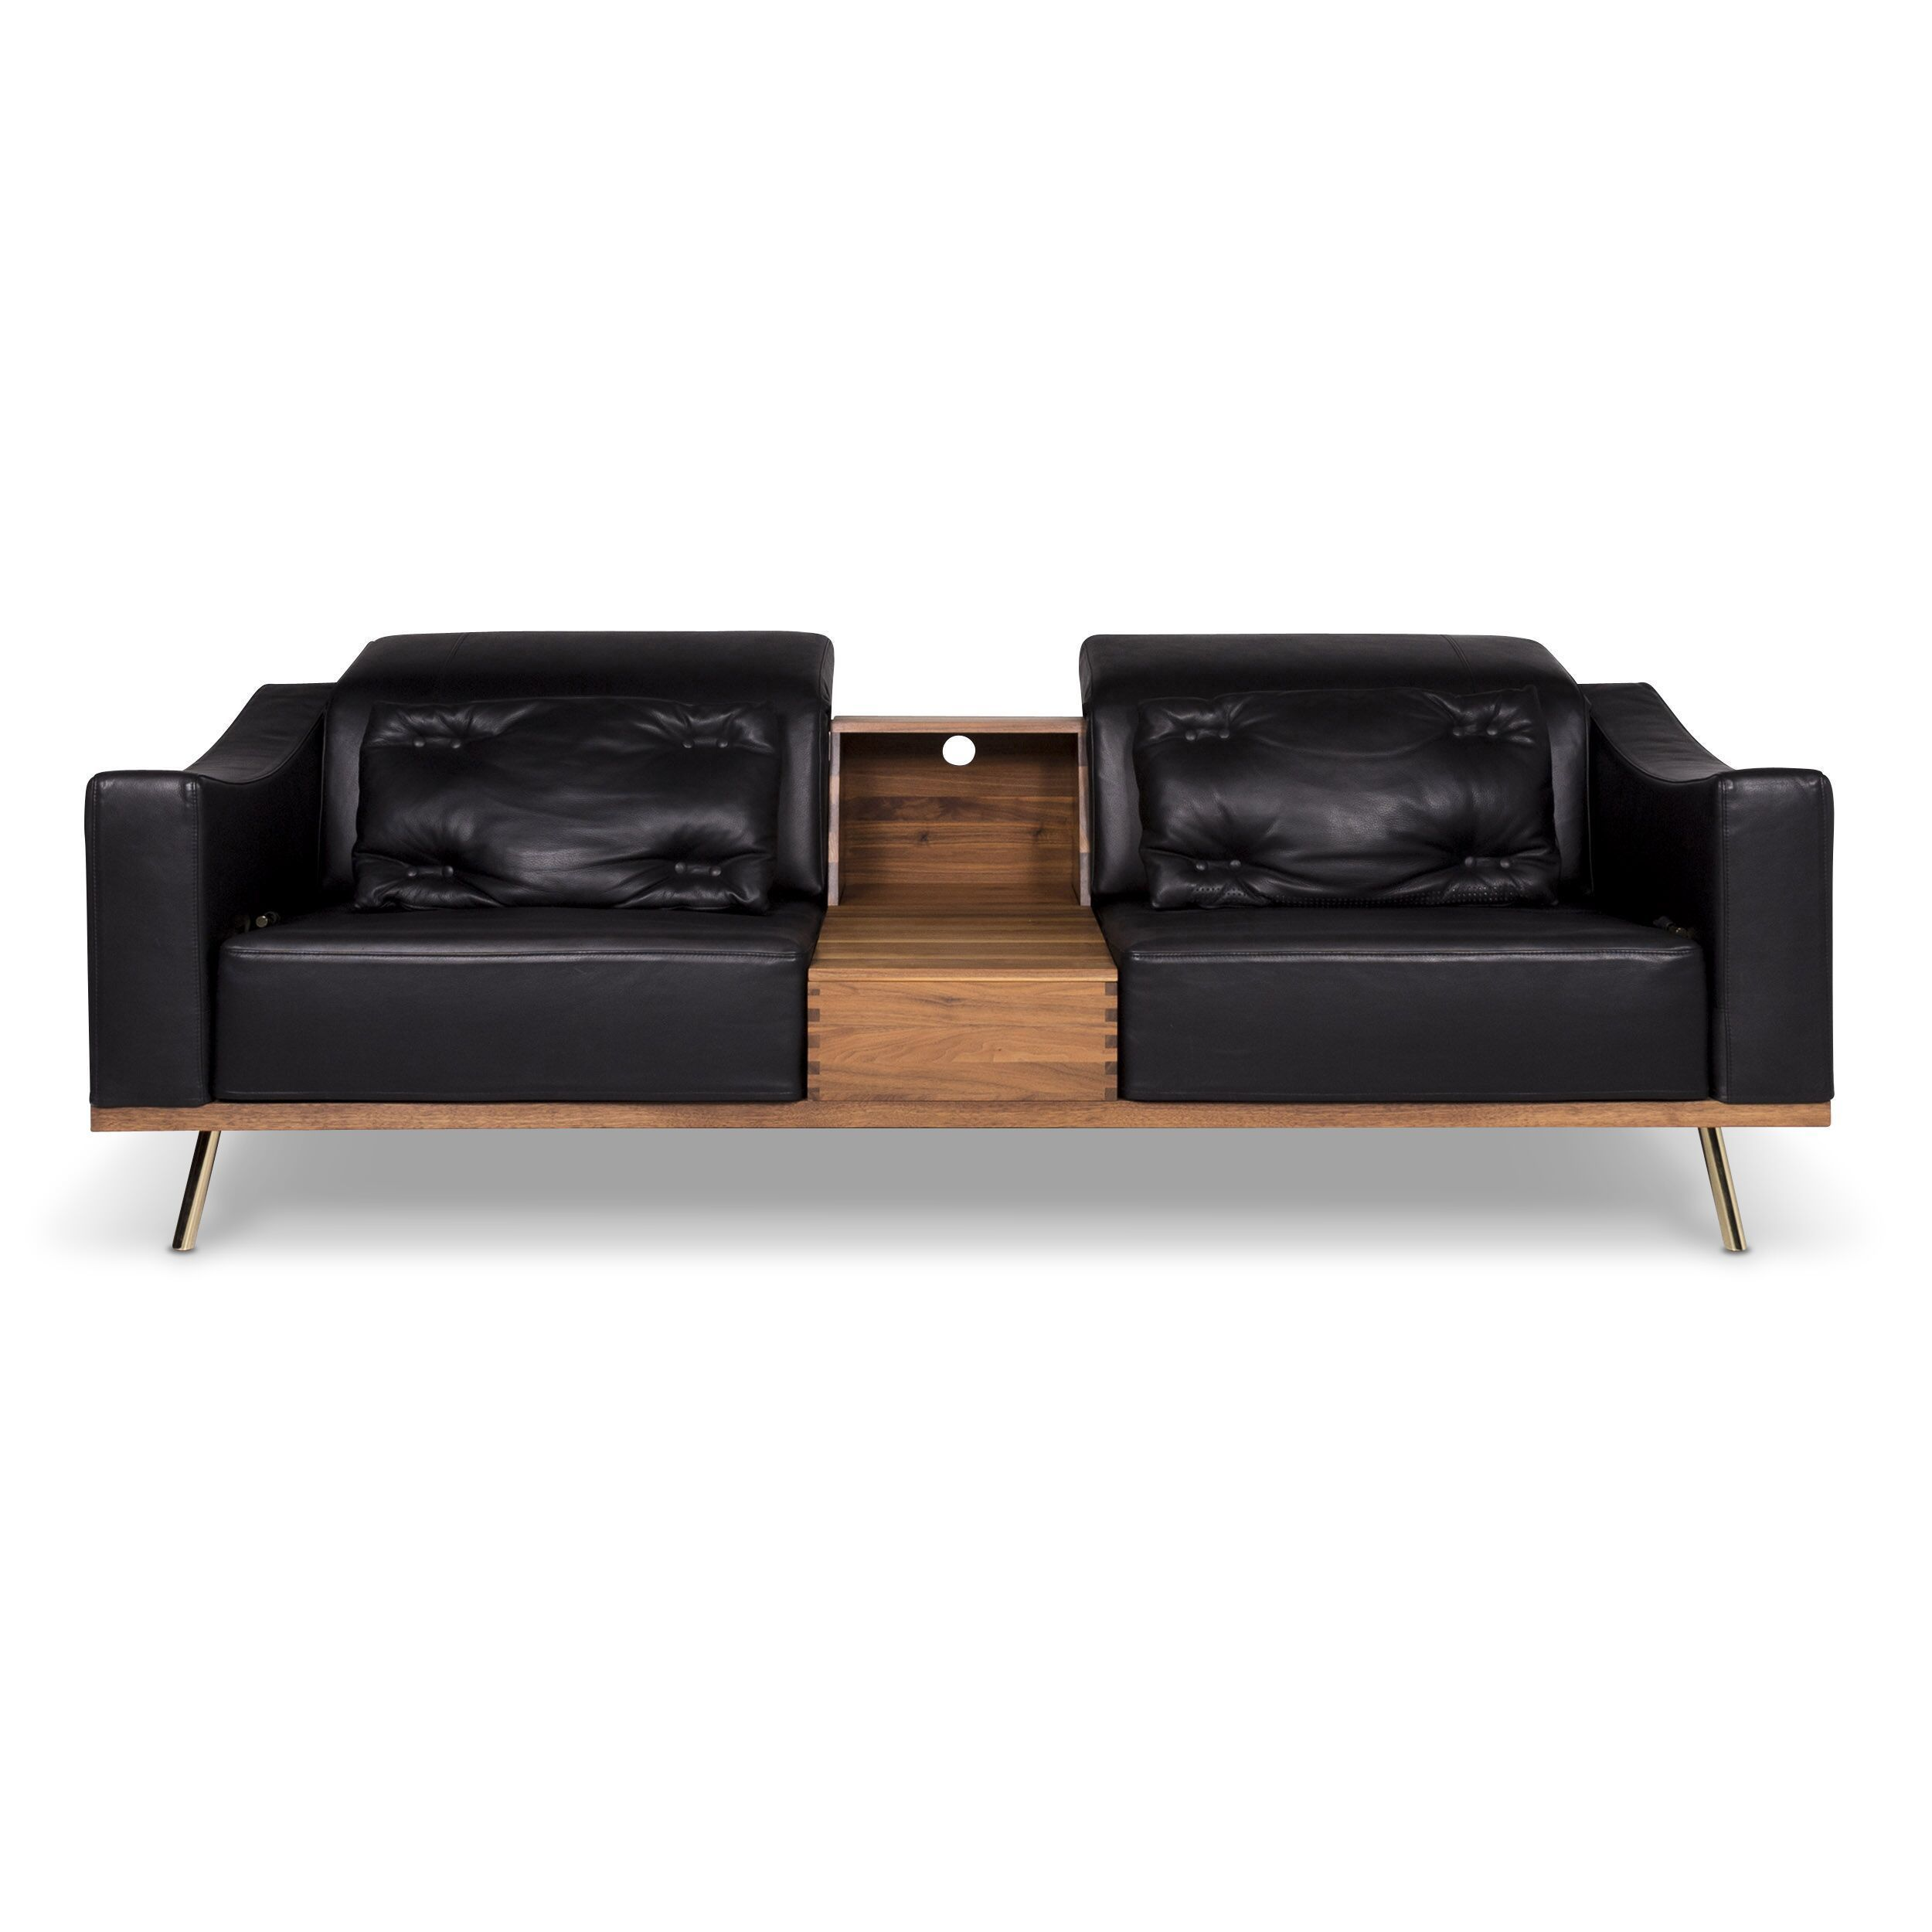 Brühl Und Sippold Brühl Sippold Deep Space Designer Leather Wood Sofa Two Seater Couch 9472